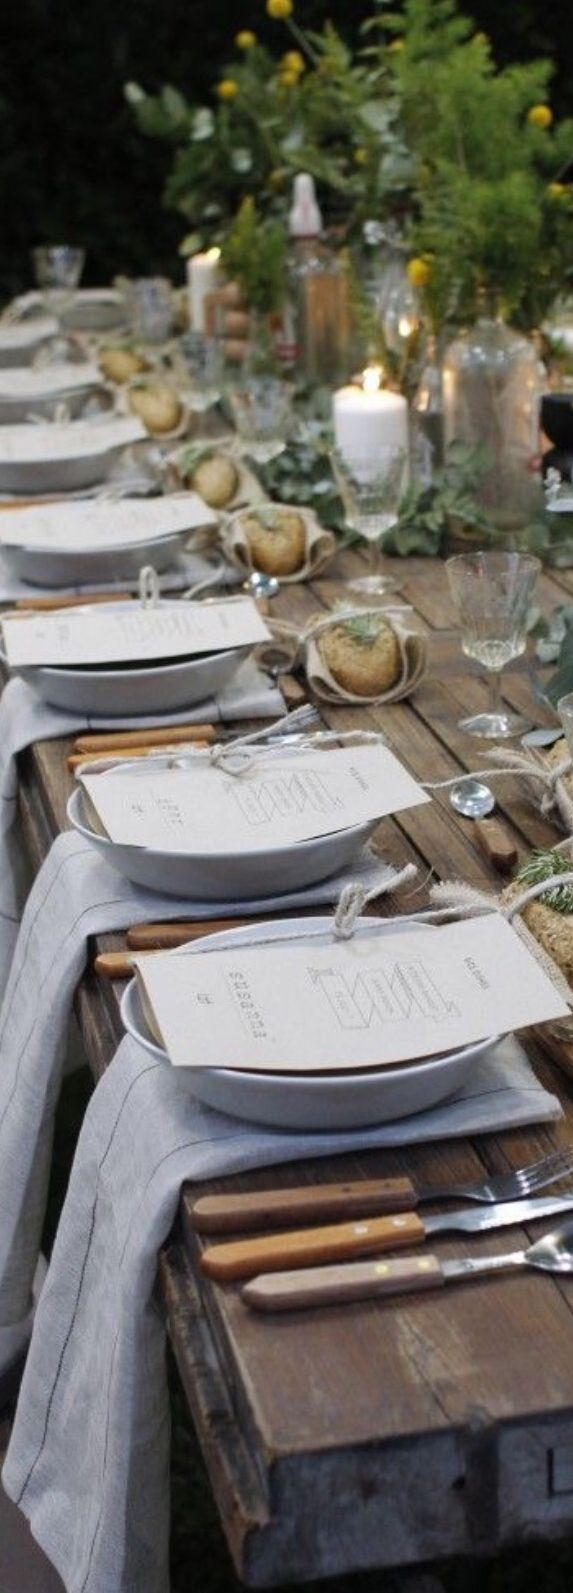 Fall Tablescape Ideas #Thanksgiving #fall #tablesetting